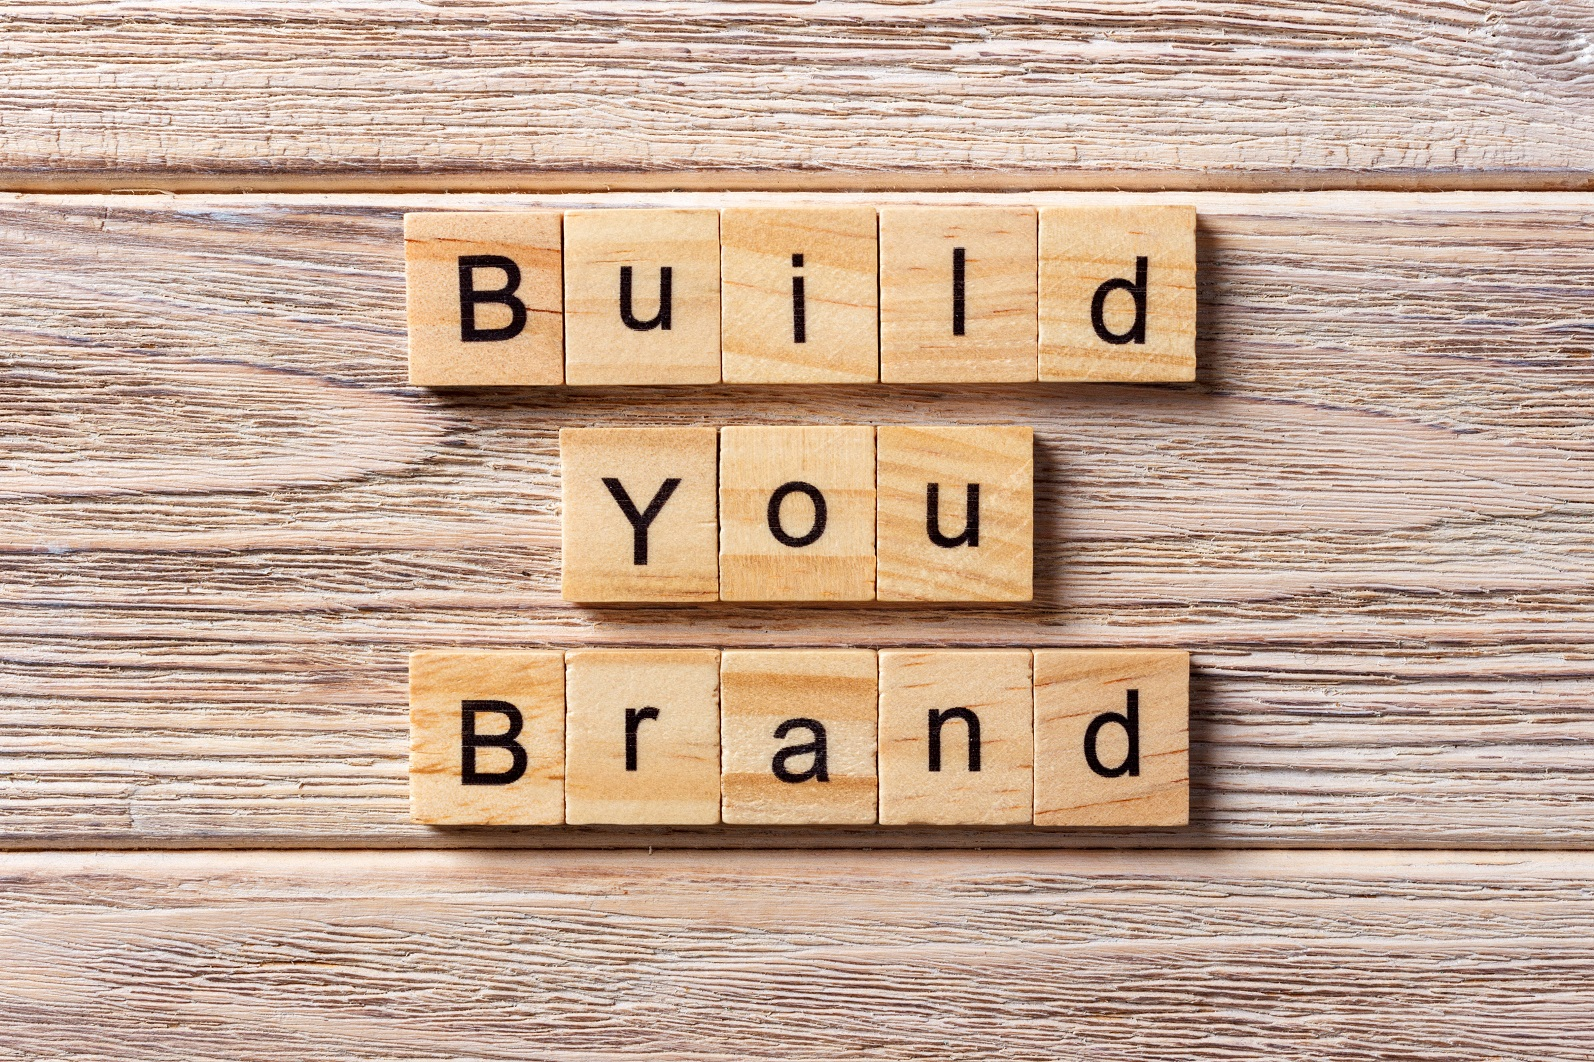 build your brand on wooden blocks